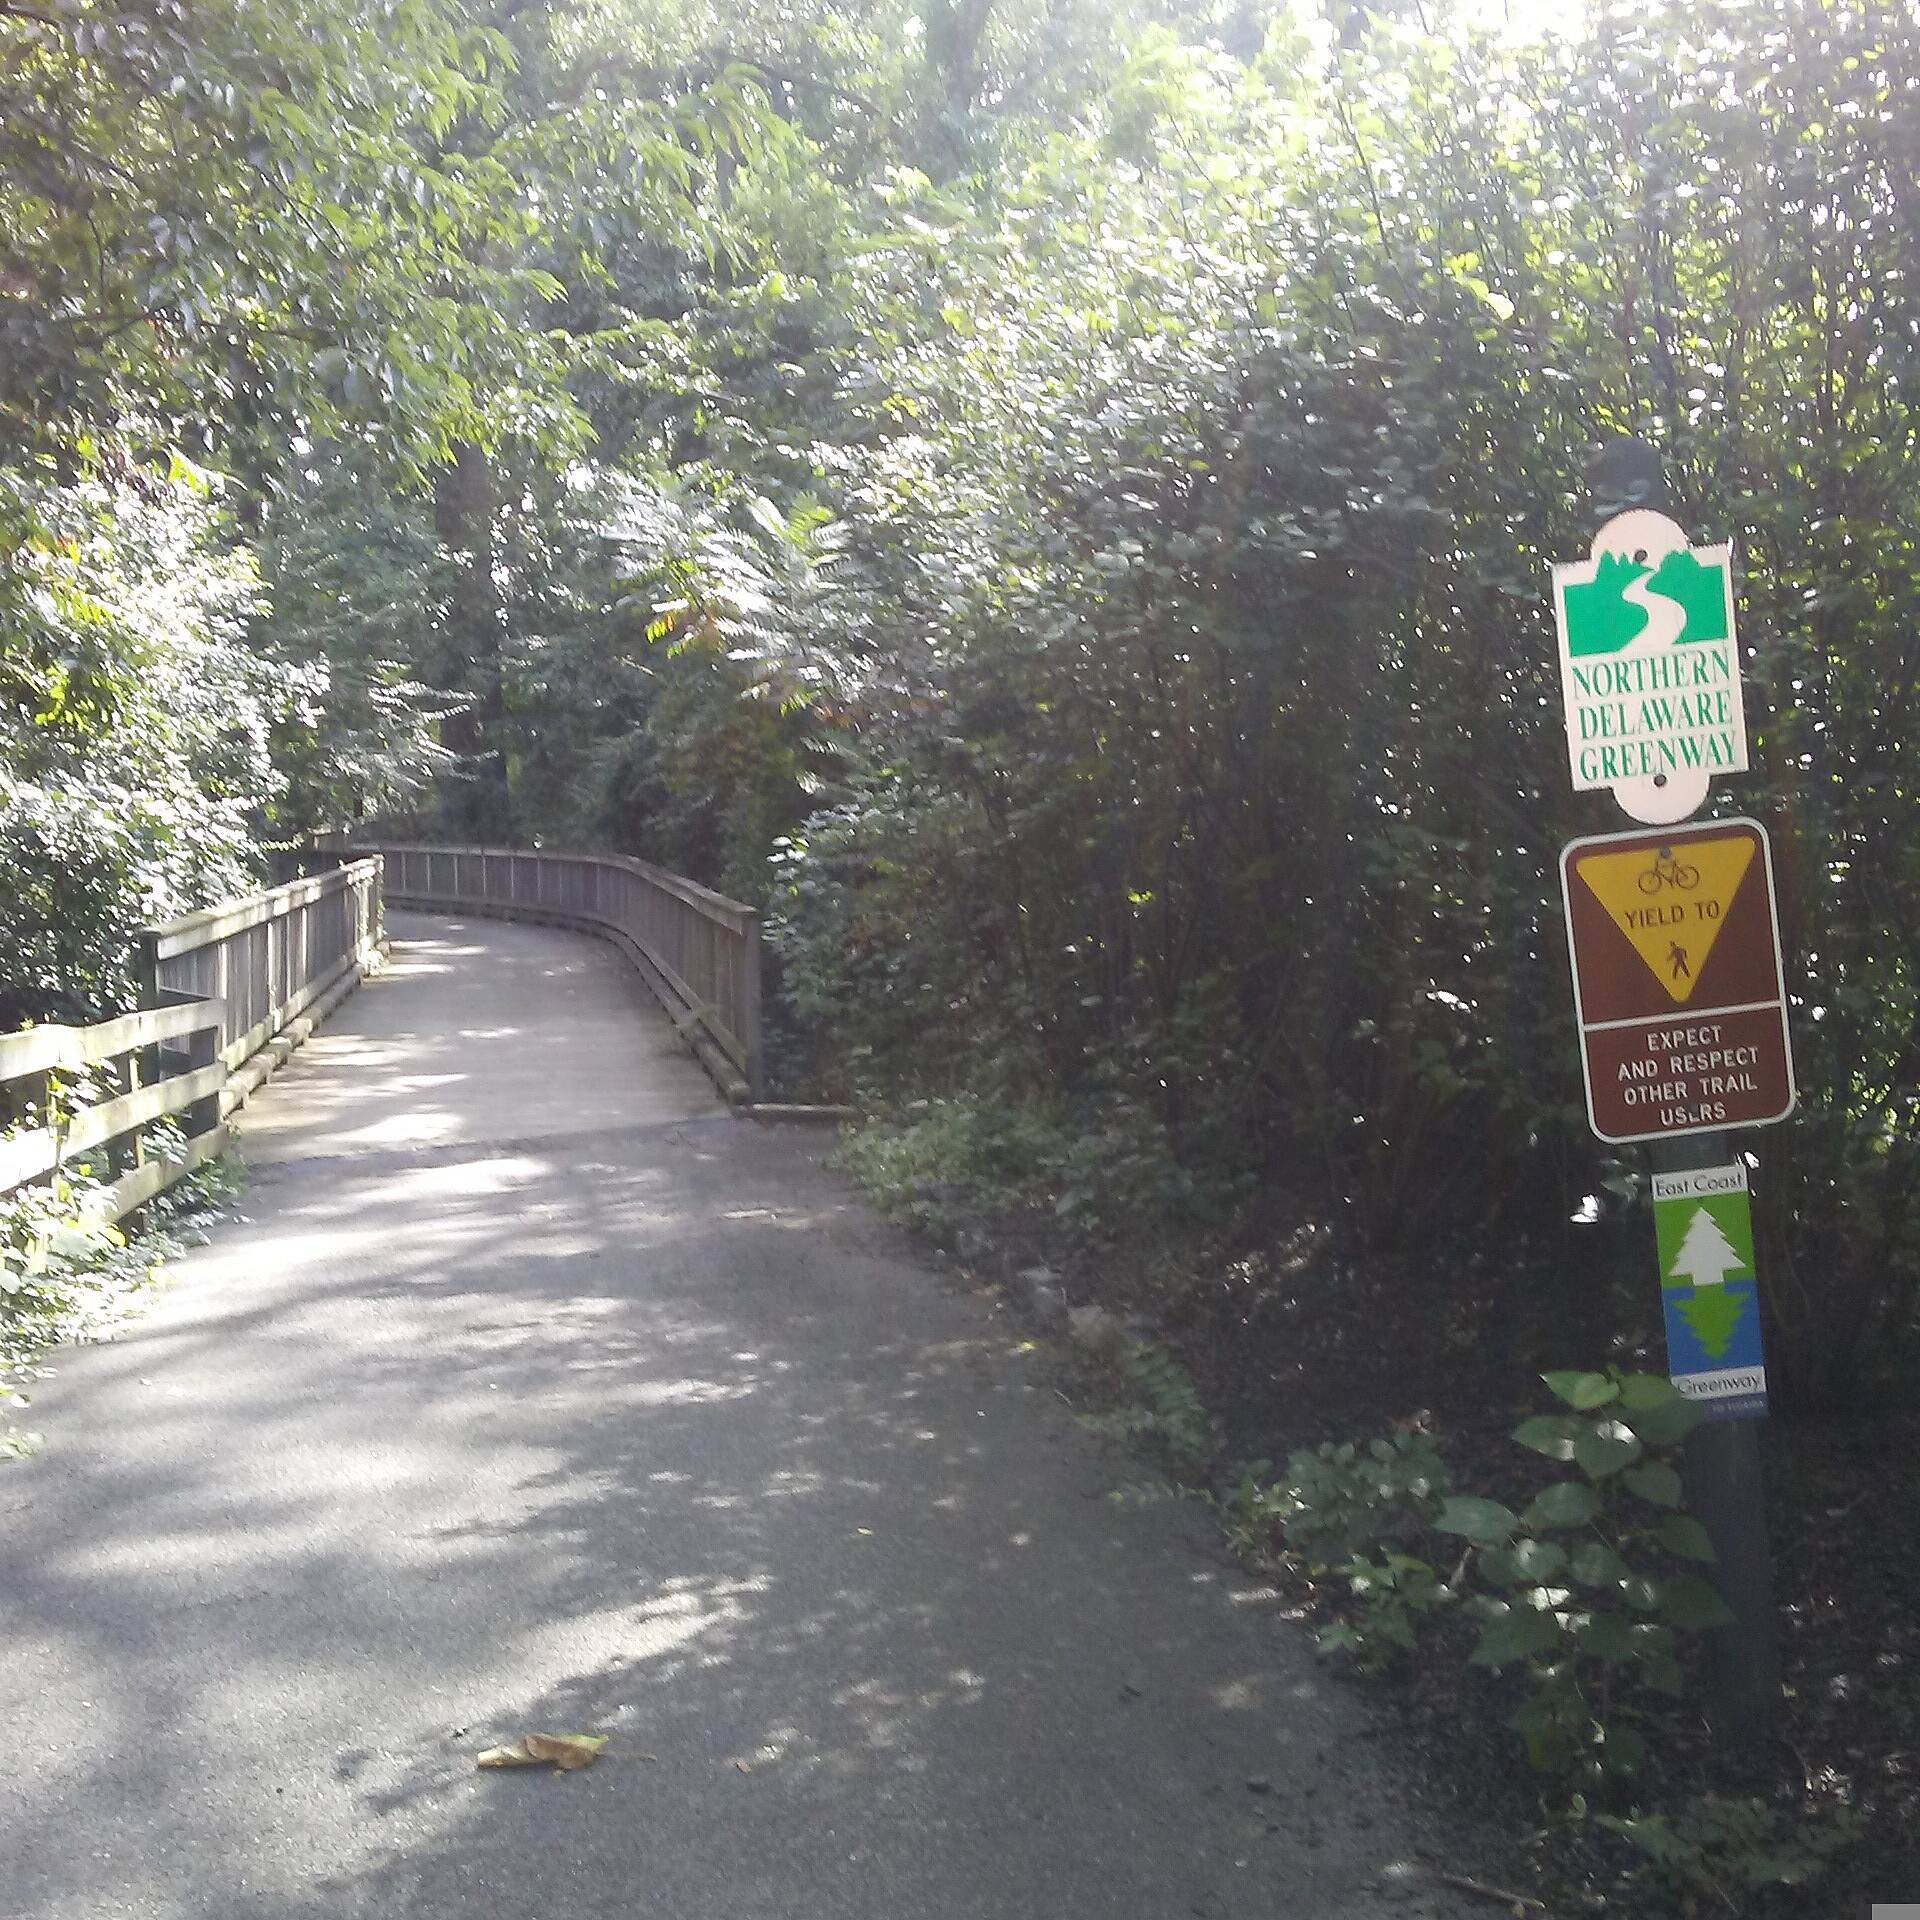 Northern Delaware Greenway Trail Northern Delaware Greenway Signs marking the trail as both the Northern Delaware Greenway and part of the East Coast Greenway are posted at the east end of the boardwalk off Weldin Ridge Drive.